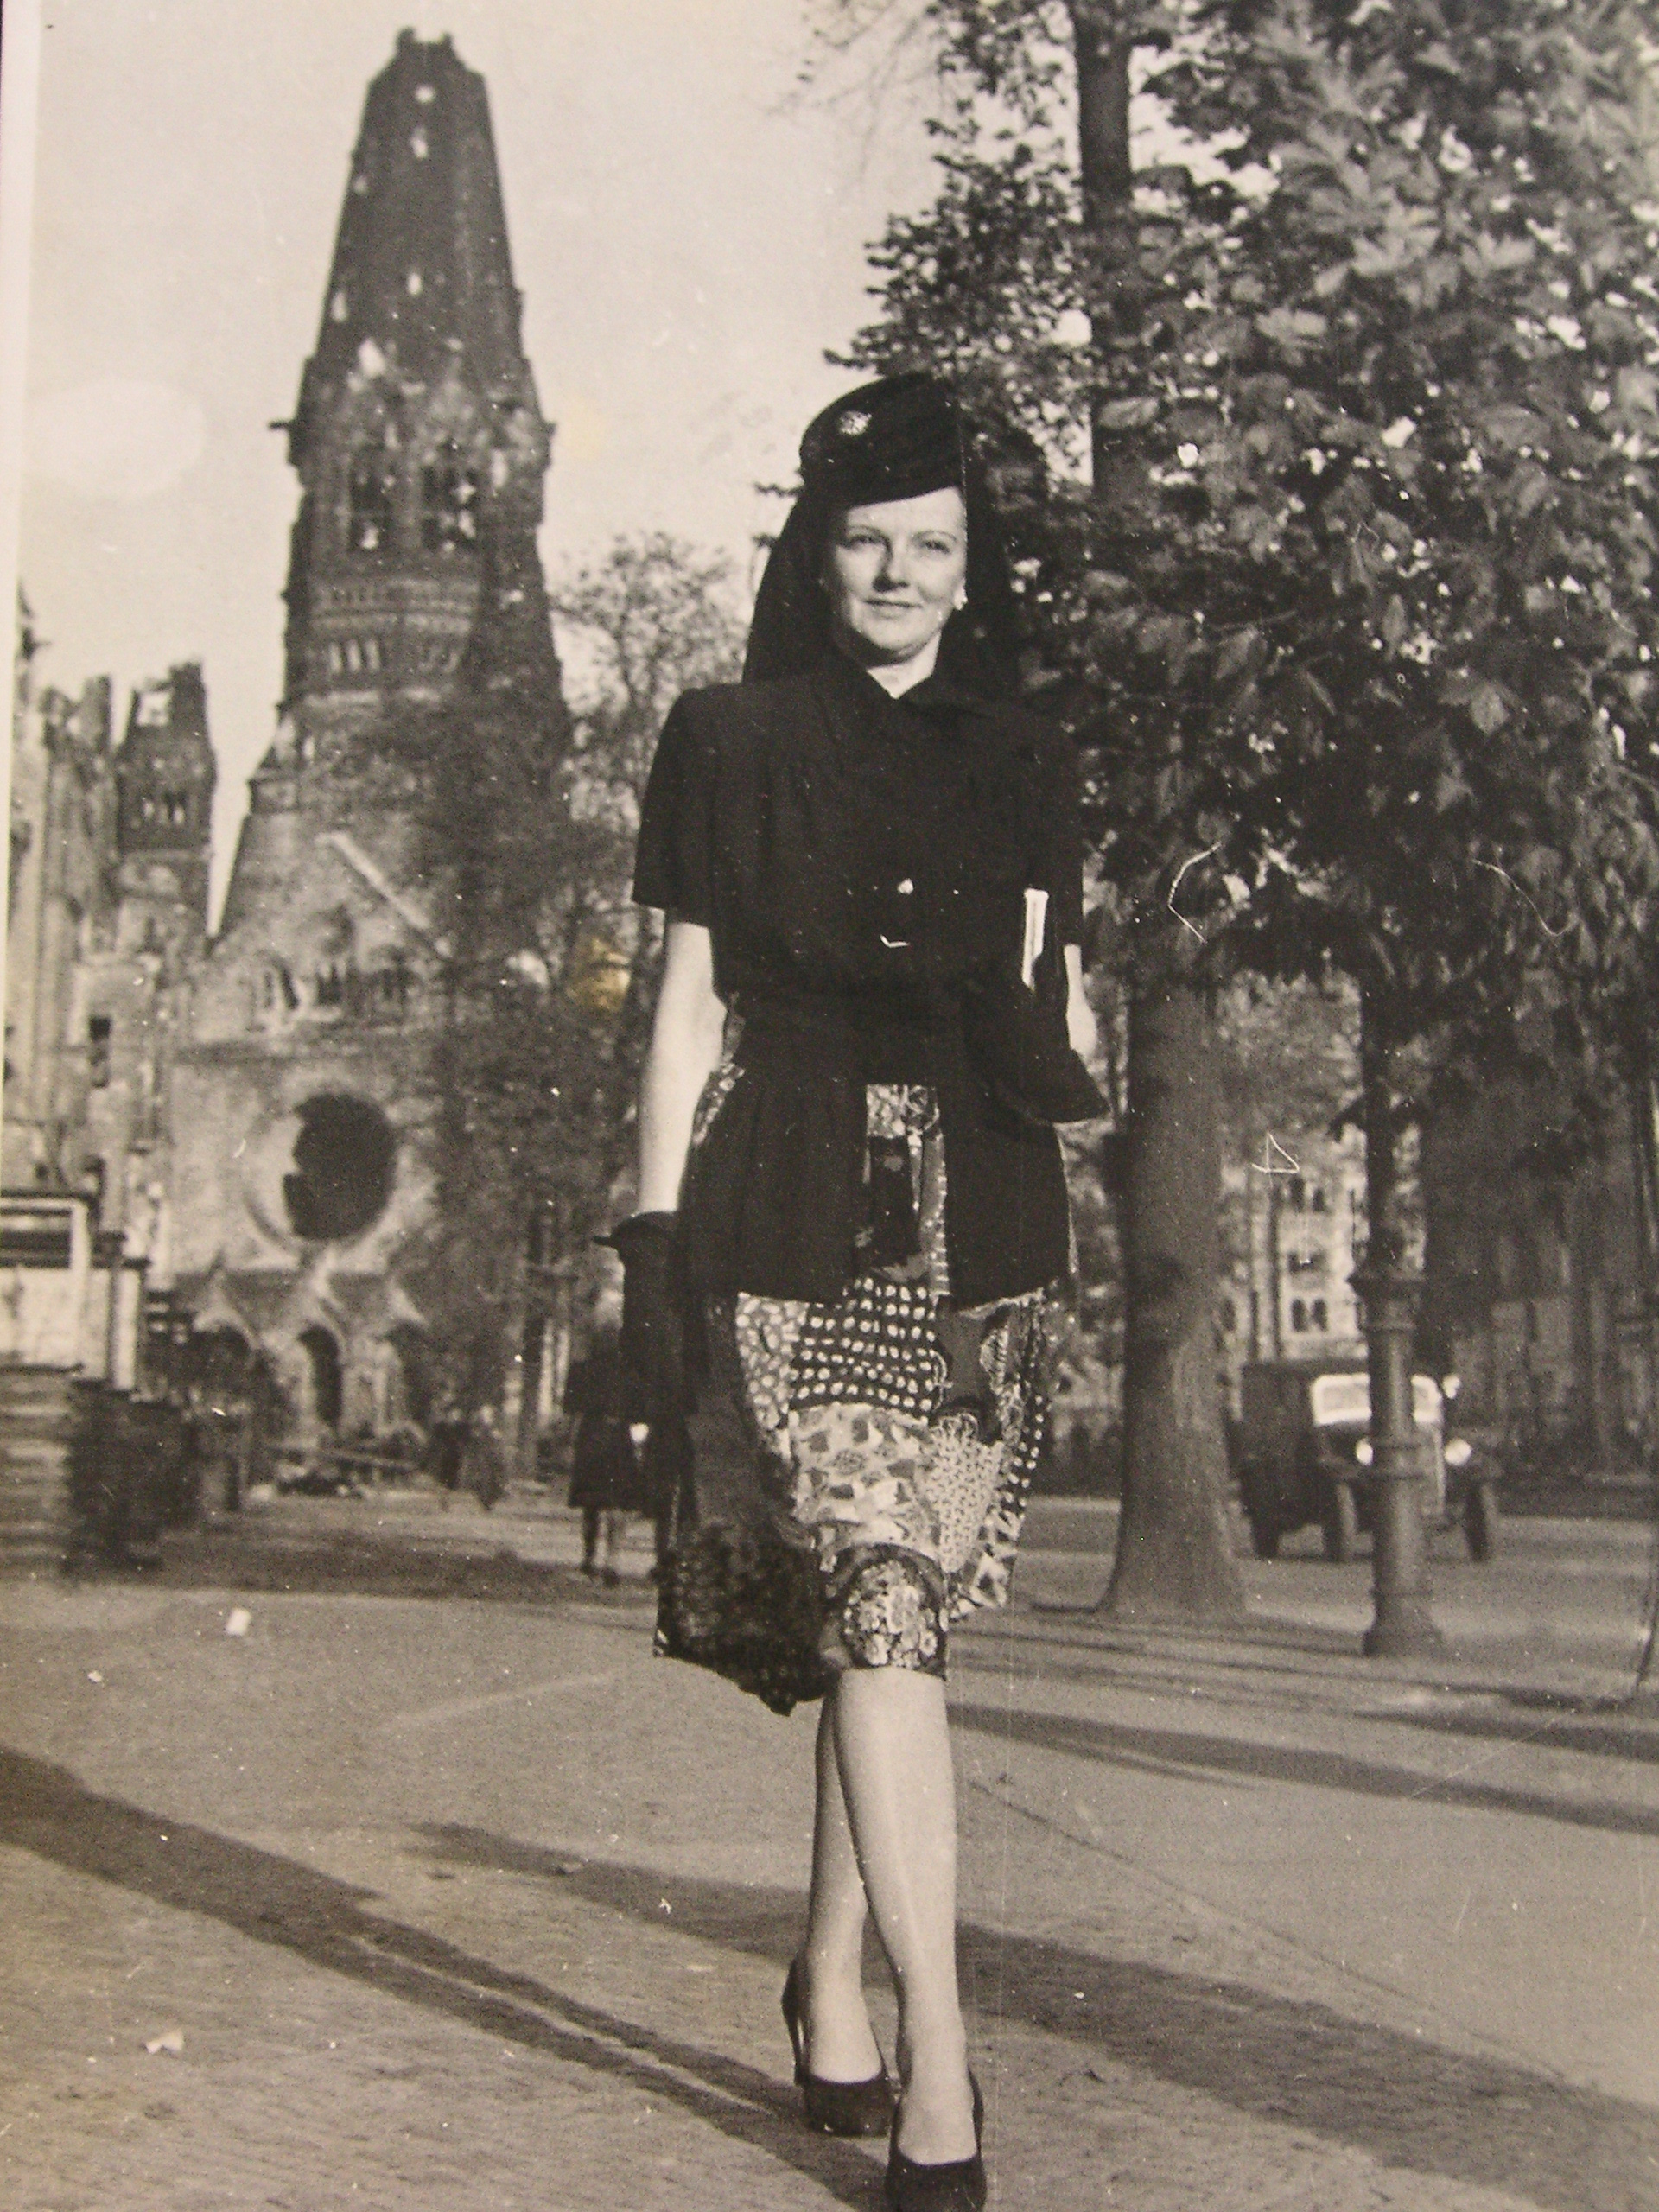 Tracing The Locations Of Berliner Chic: Then And Now